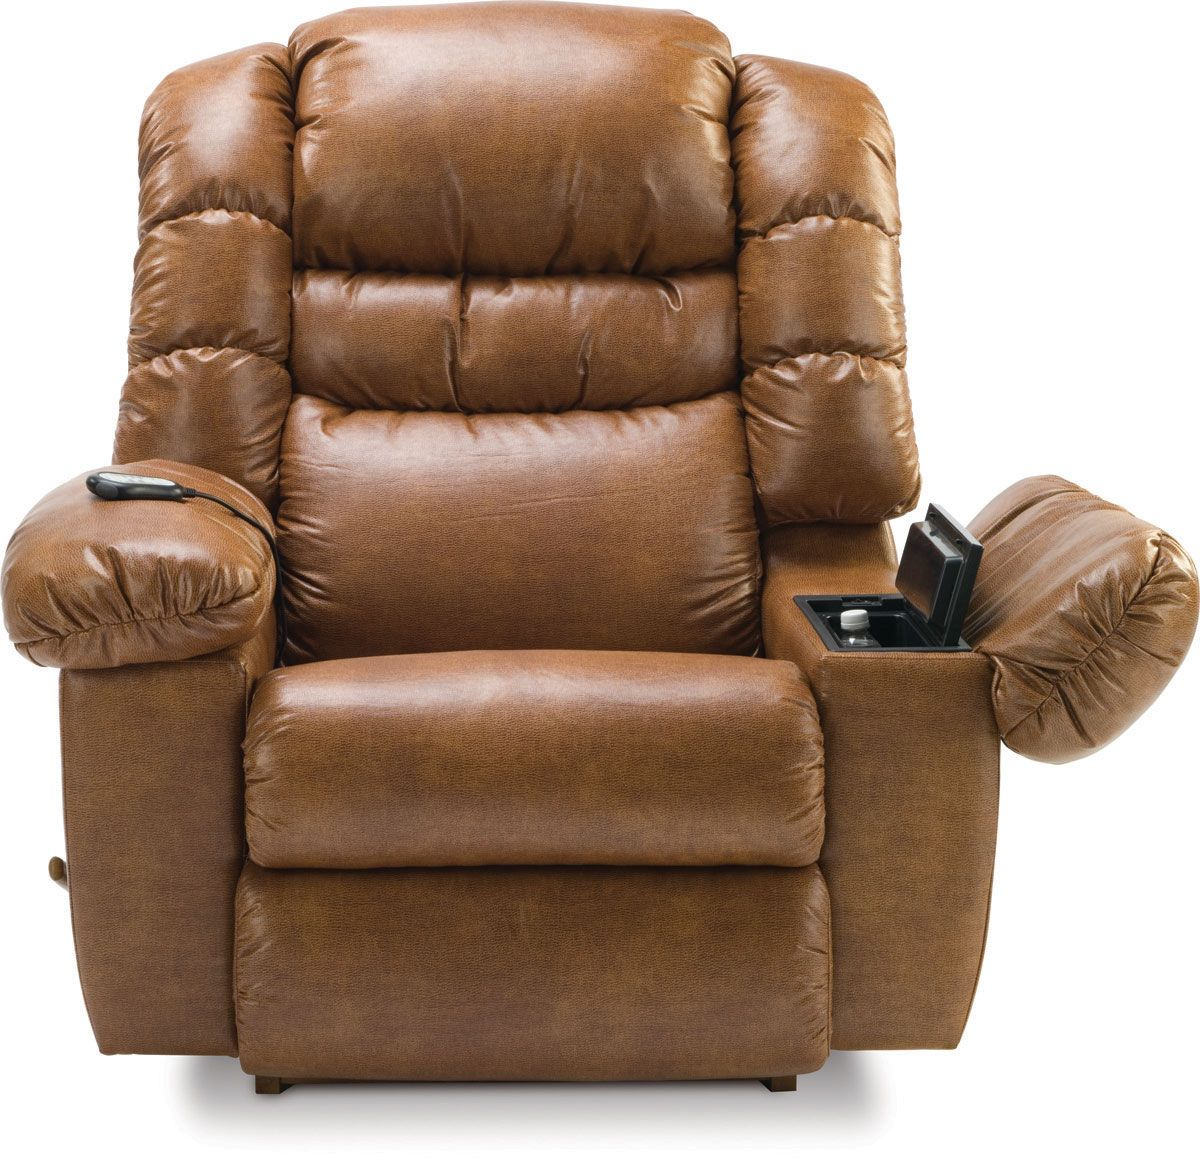 most comfortable reclining sectional sofas bernie and phyls sunbrella sofa lazyboy recliner this is